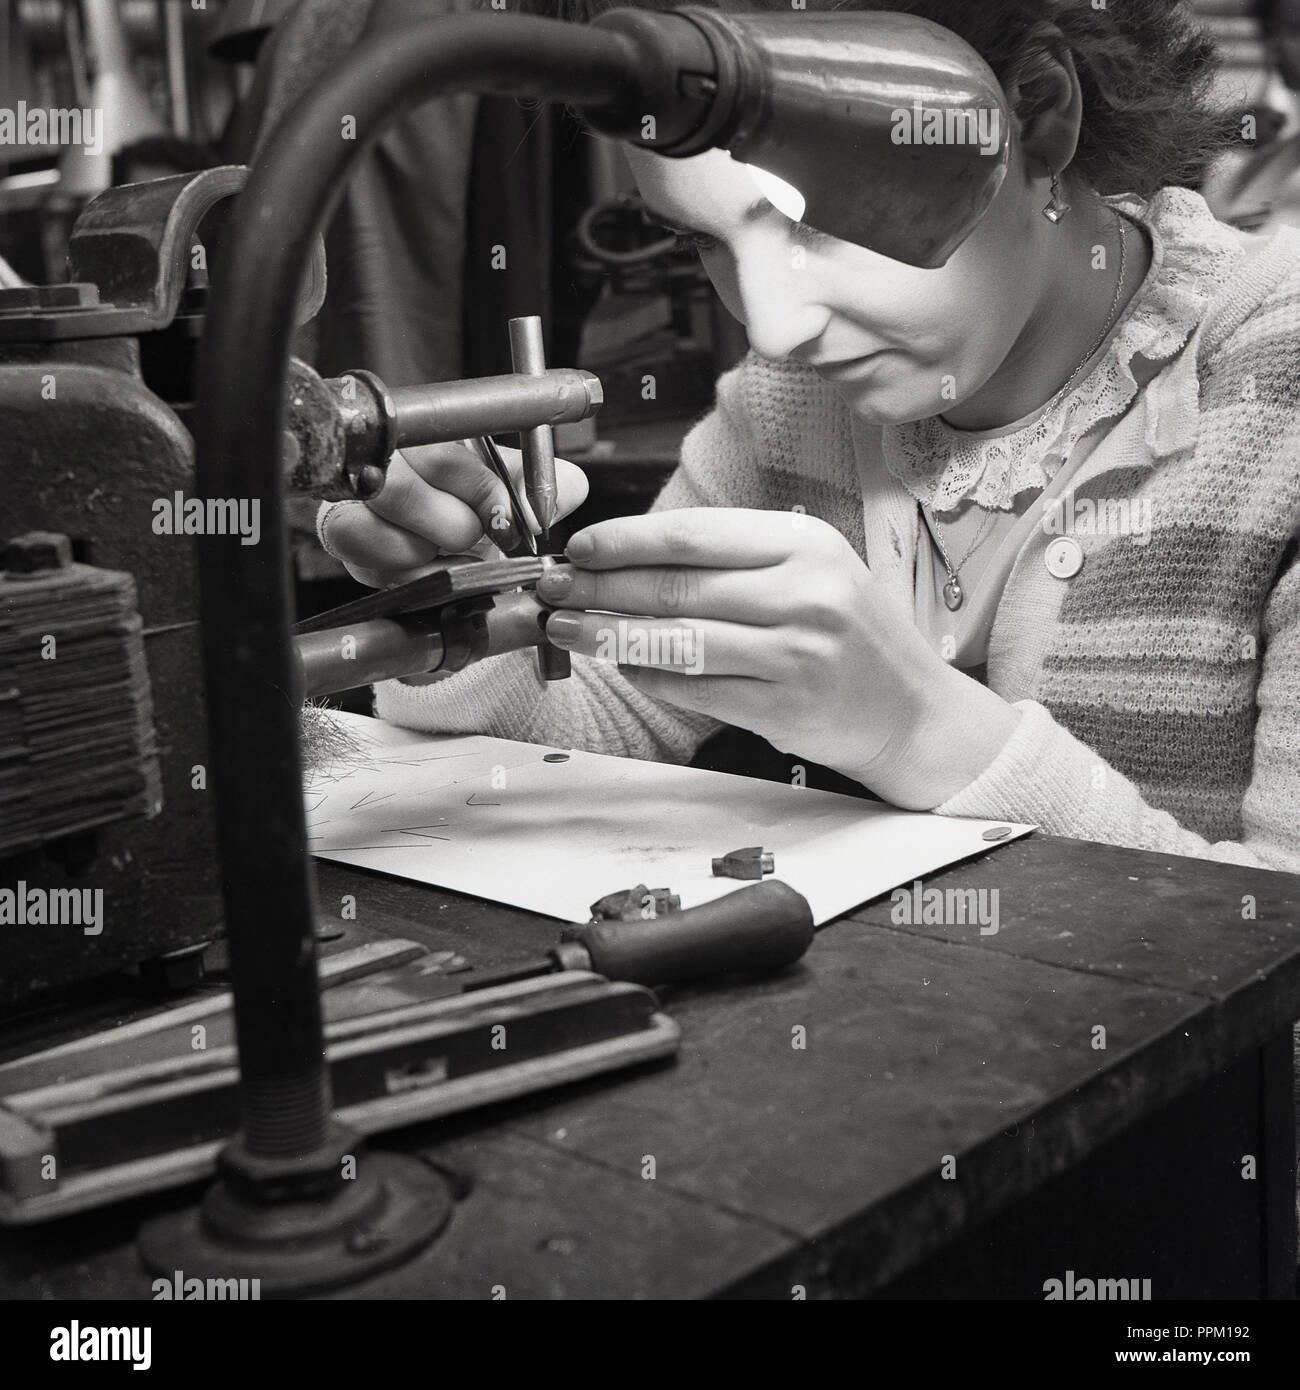 1950s, historical, a woman doing intricate, close-up work at a wooden bench with a machine tool at the Ever Ready Company, a leading British manufacturer of batteries, torches, bicycle lamps and radios in this era. With a number of factories around Britain and thousands of workers, Ever Ready dominated the zinc-carbon battery market both in the UK and in South Africa. - Stock Image